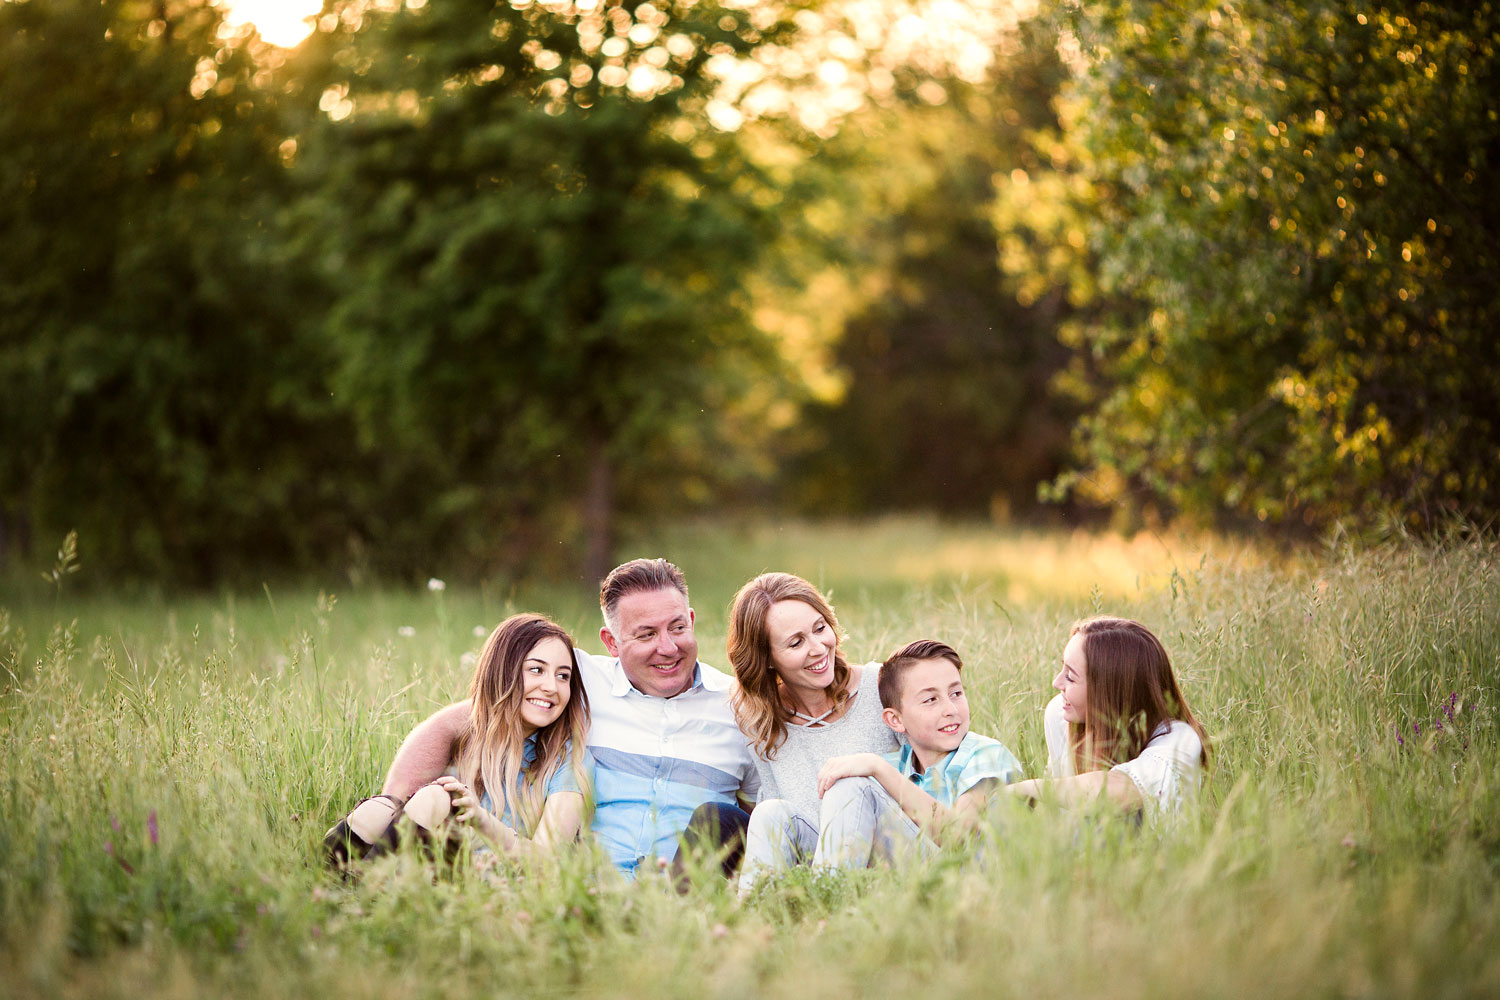 A family of five sits together and enjoys each other's company during a family photo session in Roseville, California.